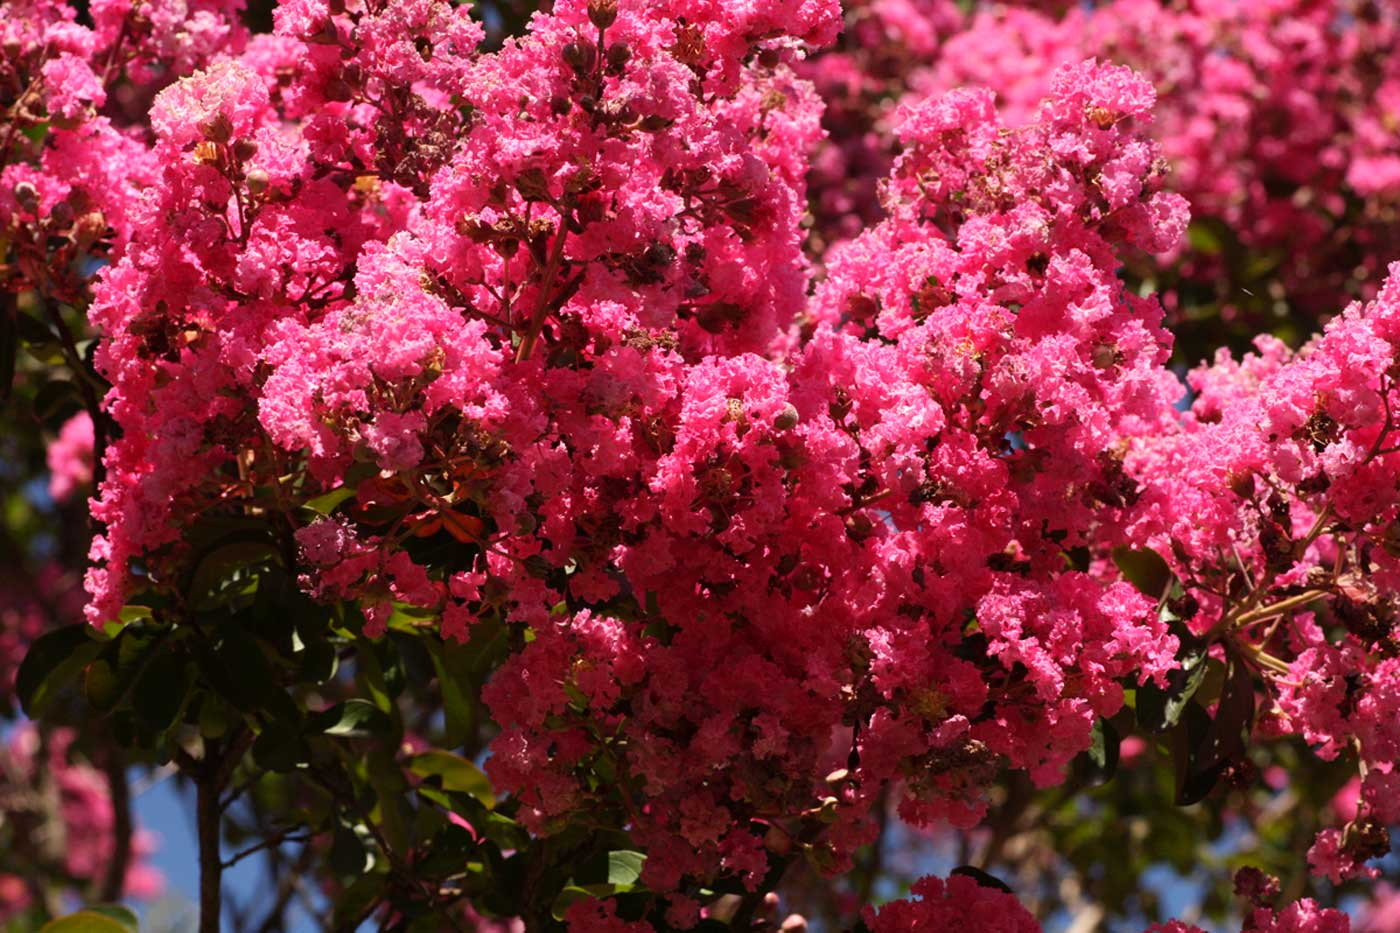 flora of zimbabwe cultivated species information individual images lagerstroemia indica. Black Bedroom Furniture Sets. Home Design Ideas